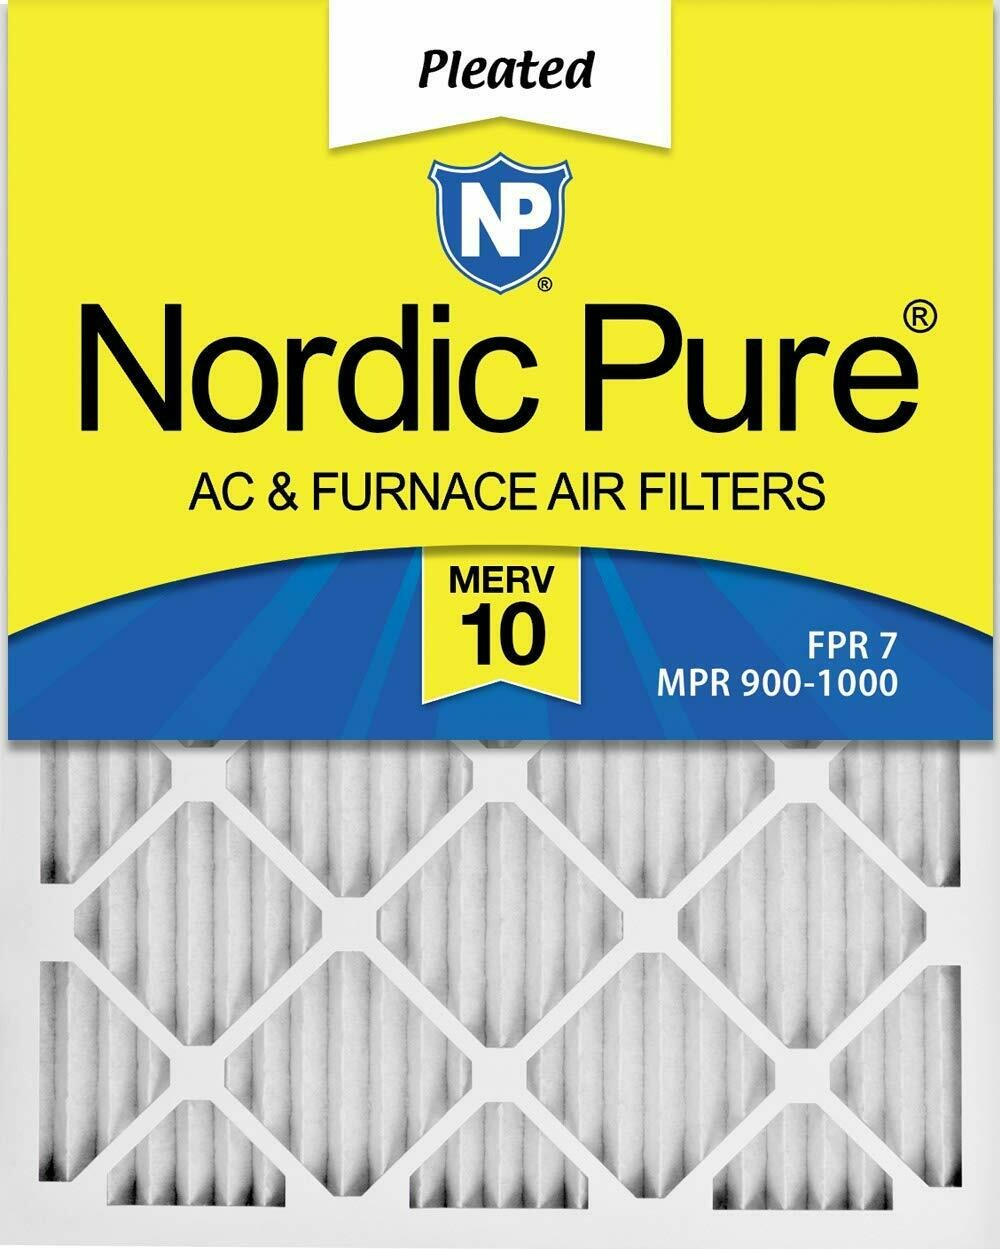 Nordic Pure Filters R: 40.53